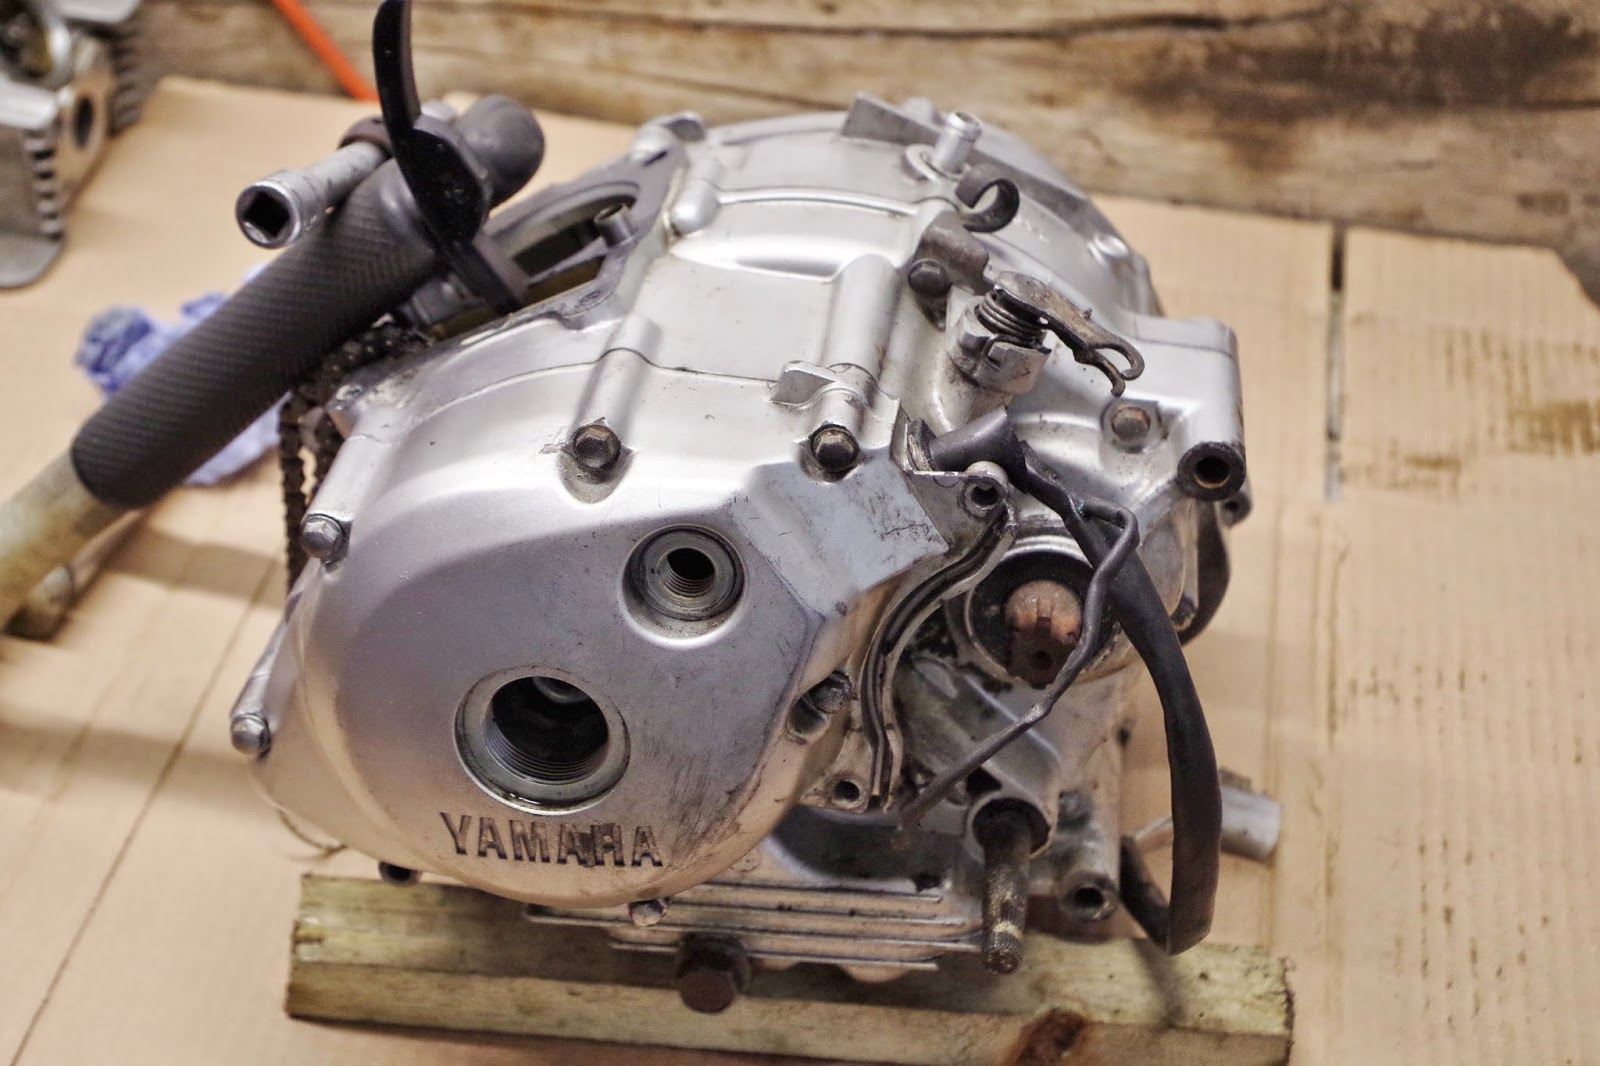 Yamaha YBR 125 Owner Blog : Yamaha YBR 125 blog flywheel - rotor ...